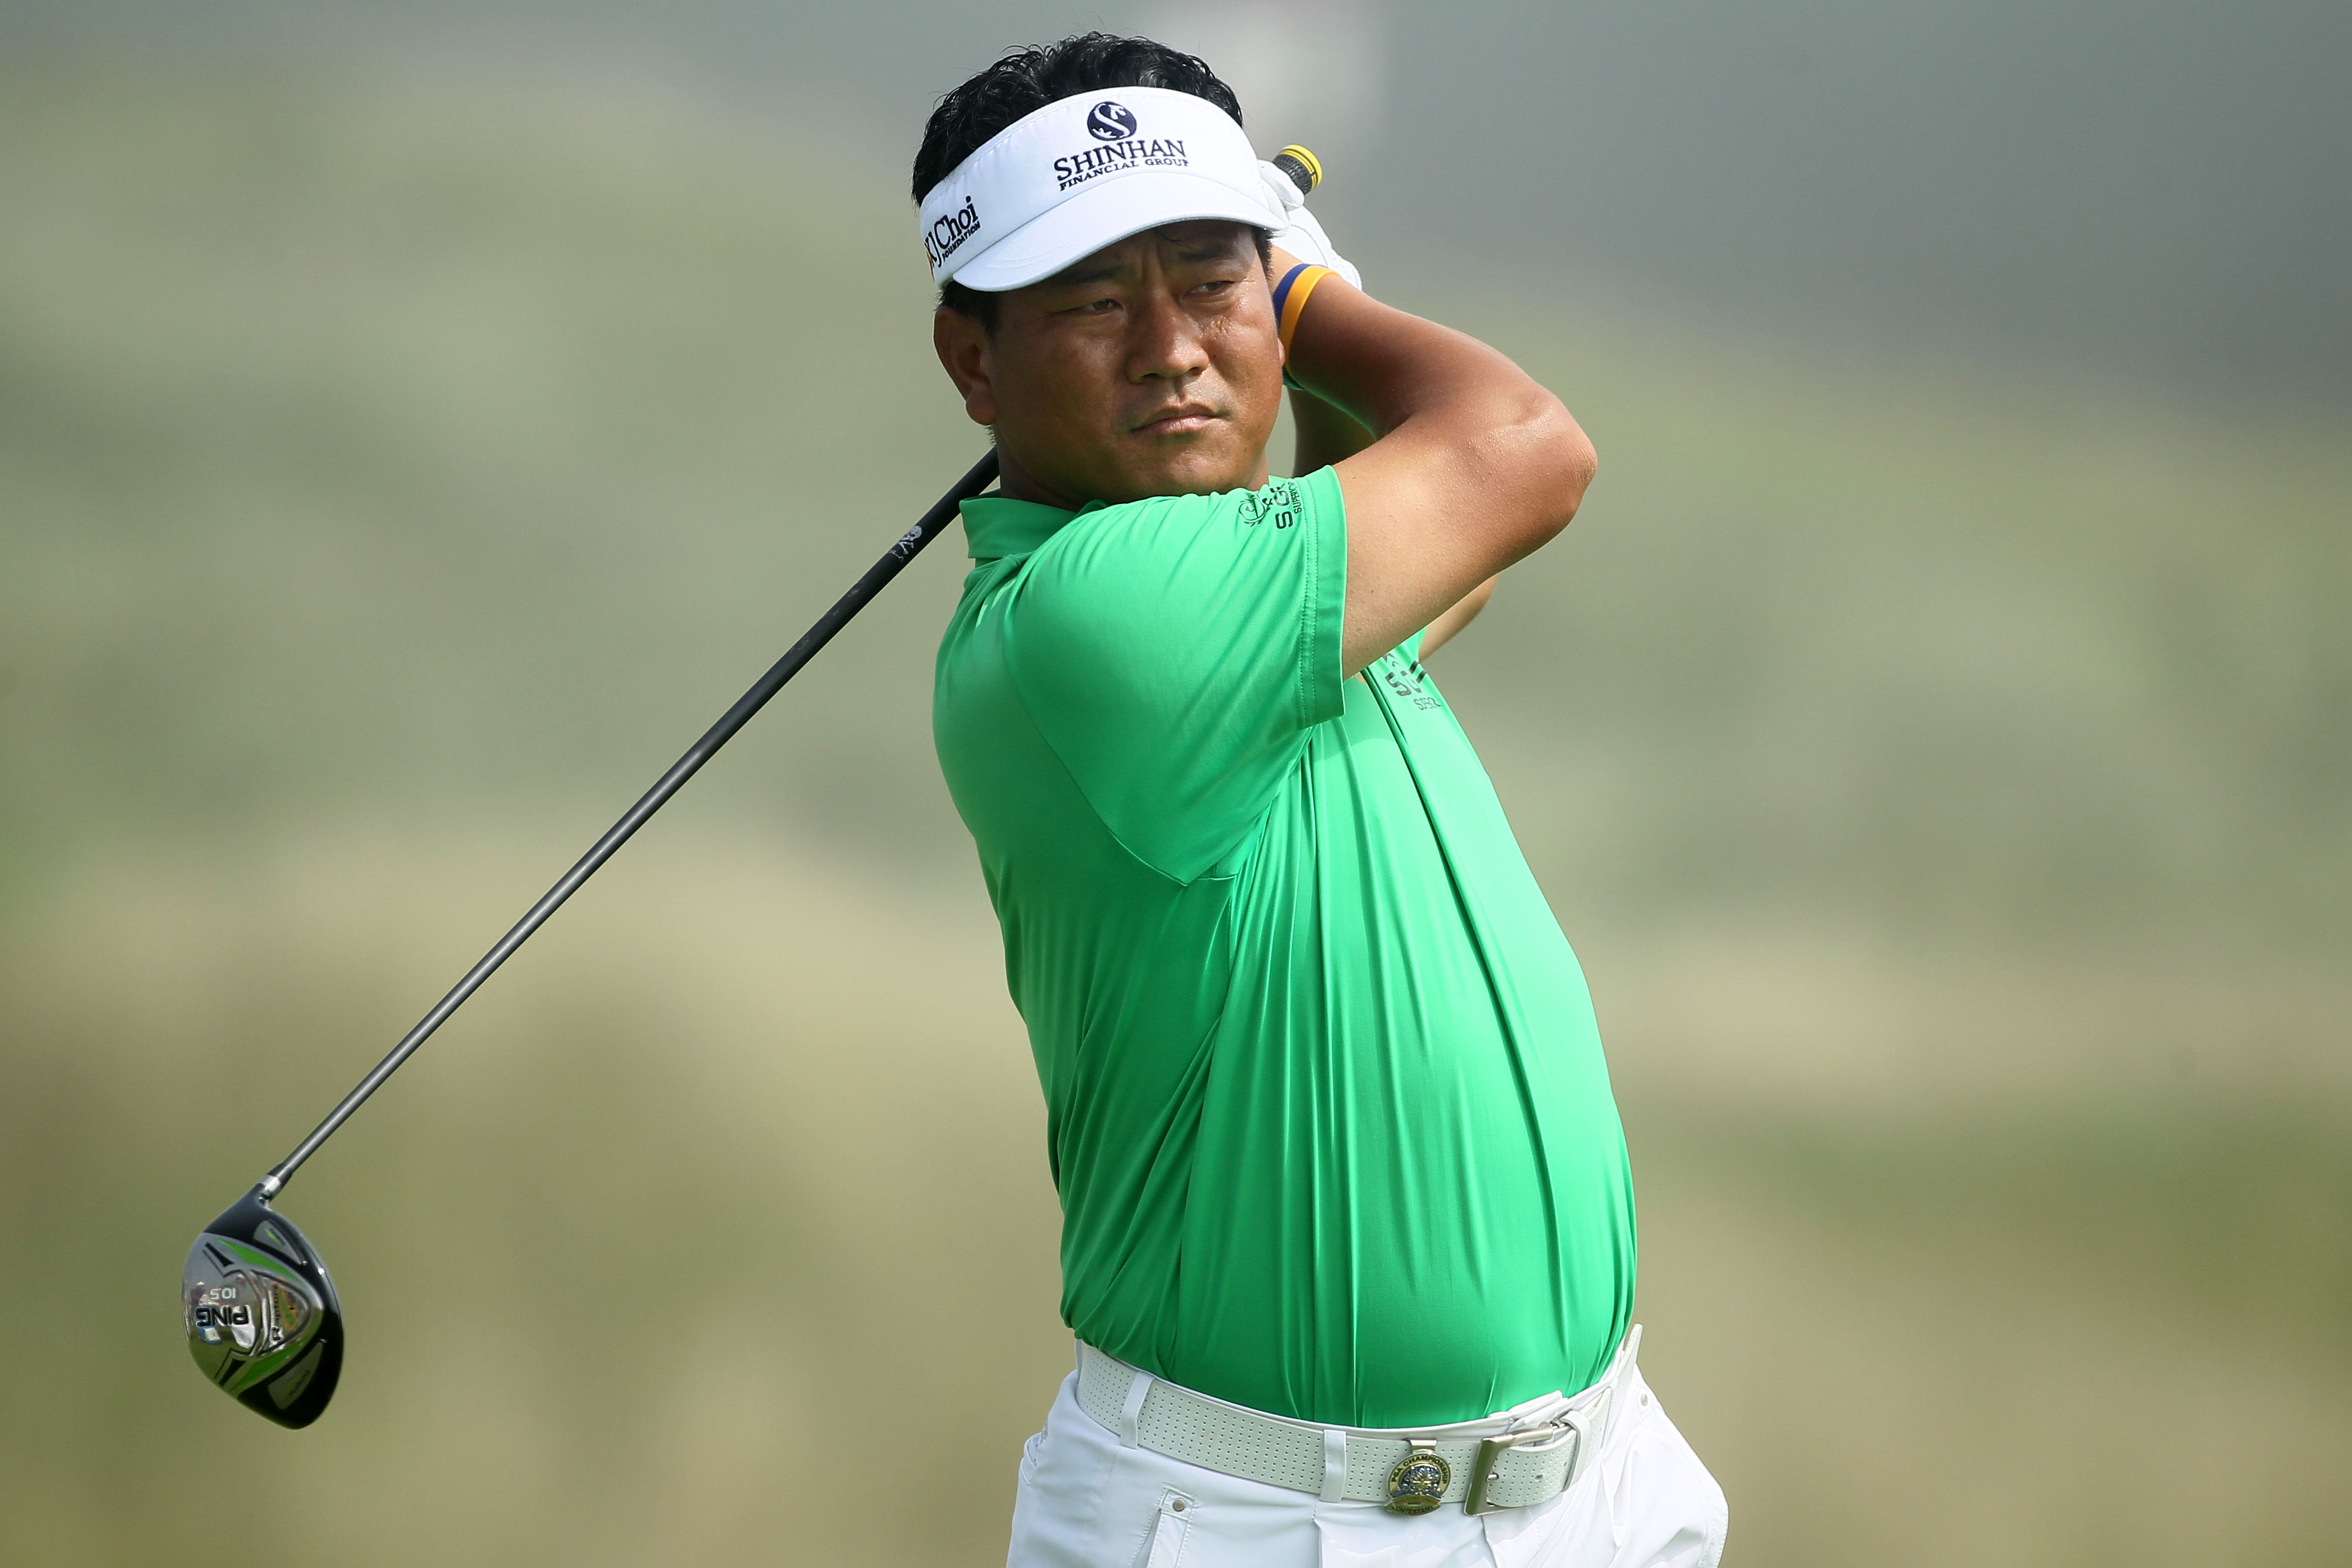 KOHLER, WI - AUGUST 12:  K.J. Choi of South Korea watches his tee shot on the second hole during the first round of the 92nd PGA Championship on the Straits Course at Whistling Straits on August 12, 2010 in Kohler, Wisconsin.  (Photo by Andy Lyons/Getty I